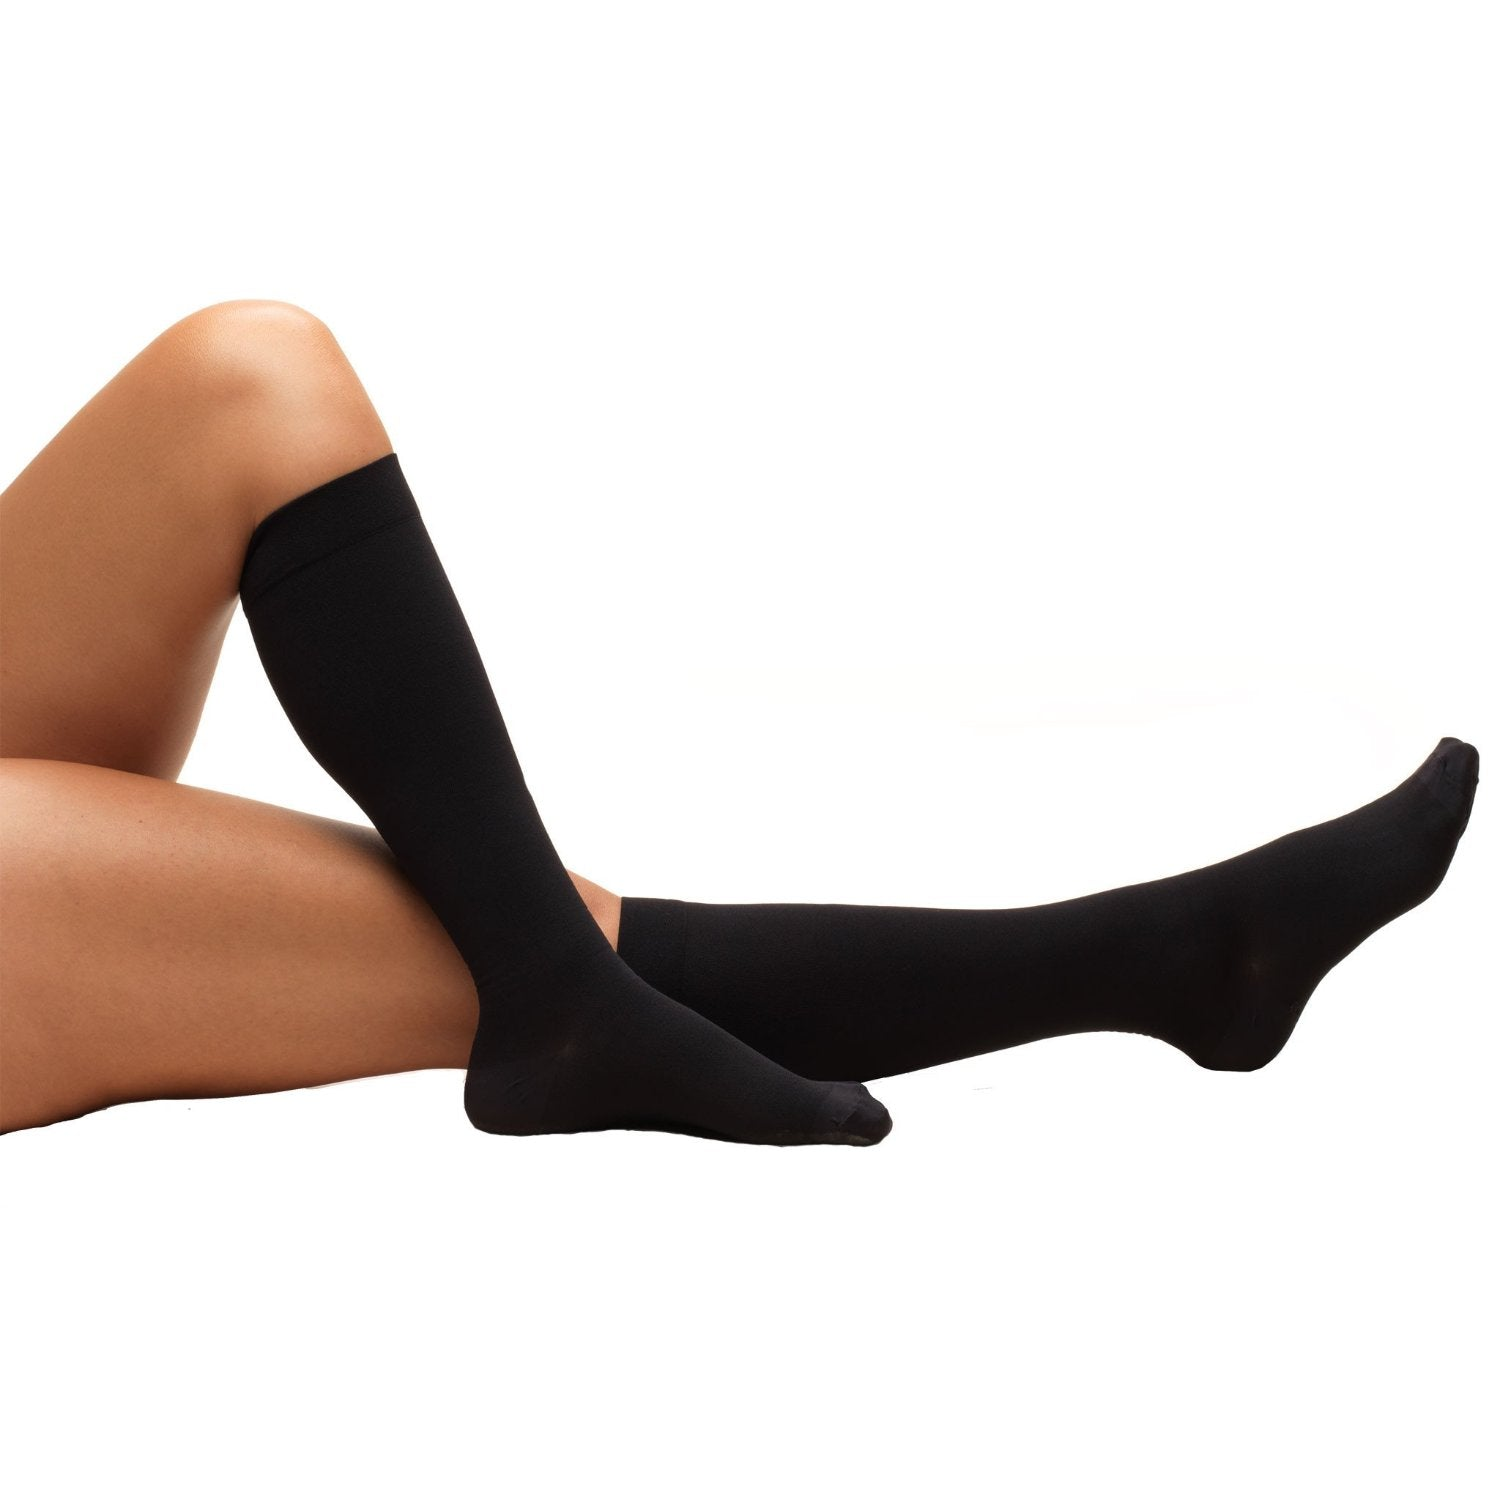 Black 8808 Knee High Closed Toe Beige Anti-Embolism Stockings